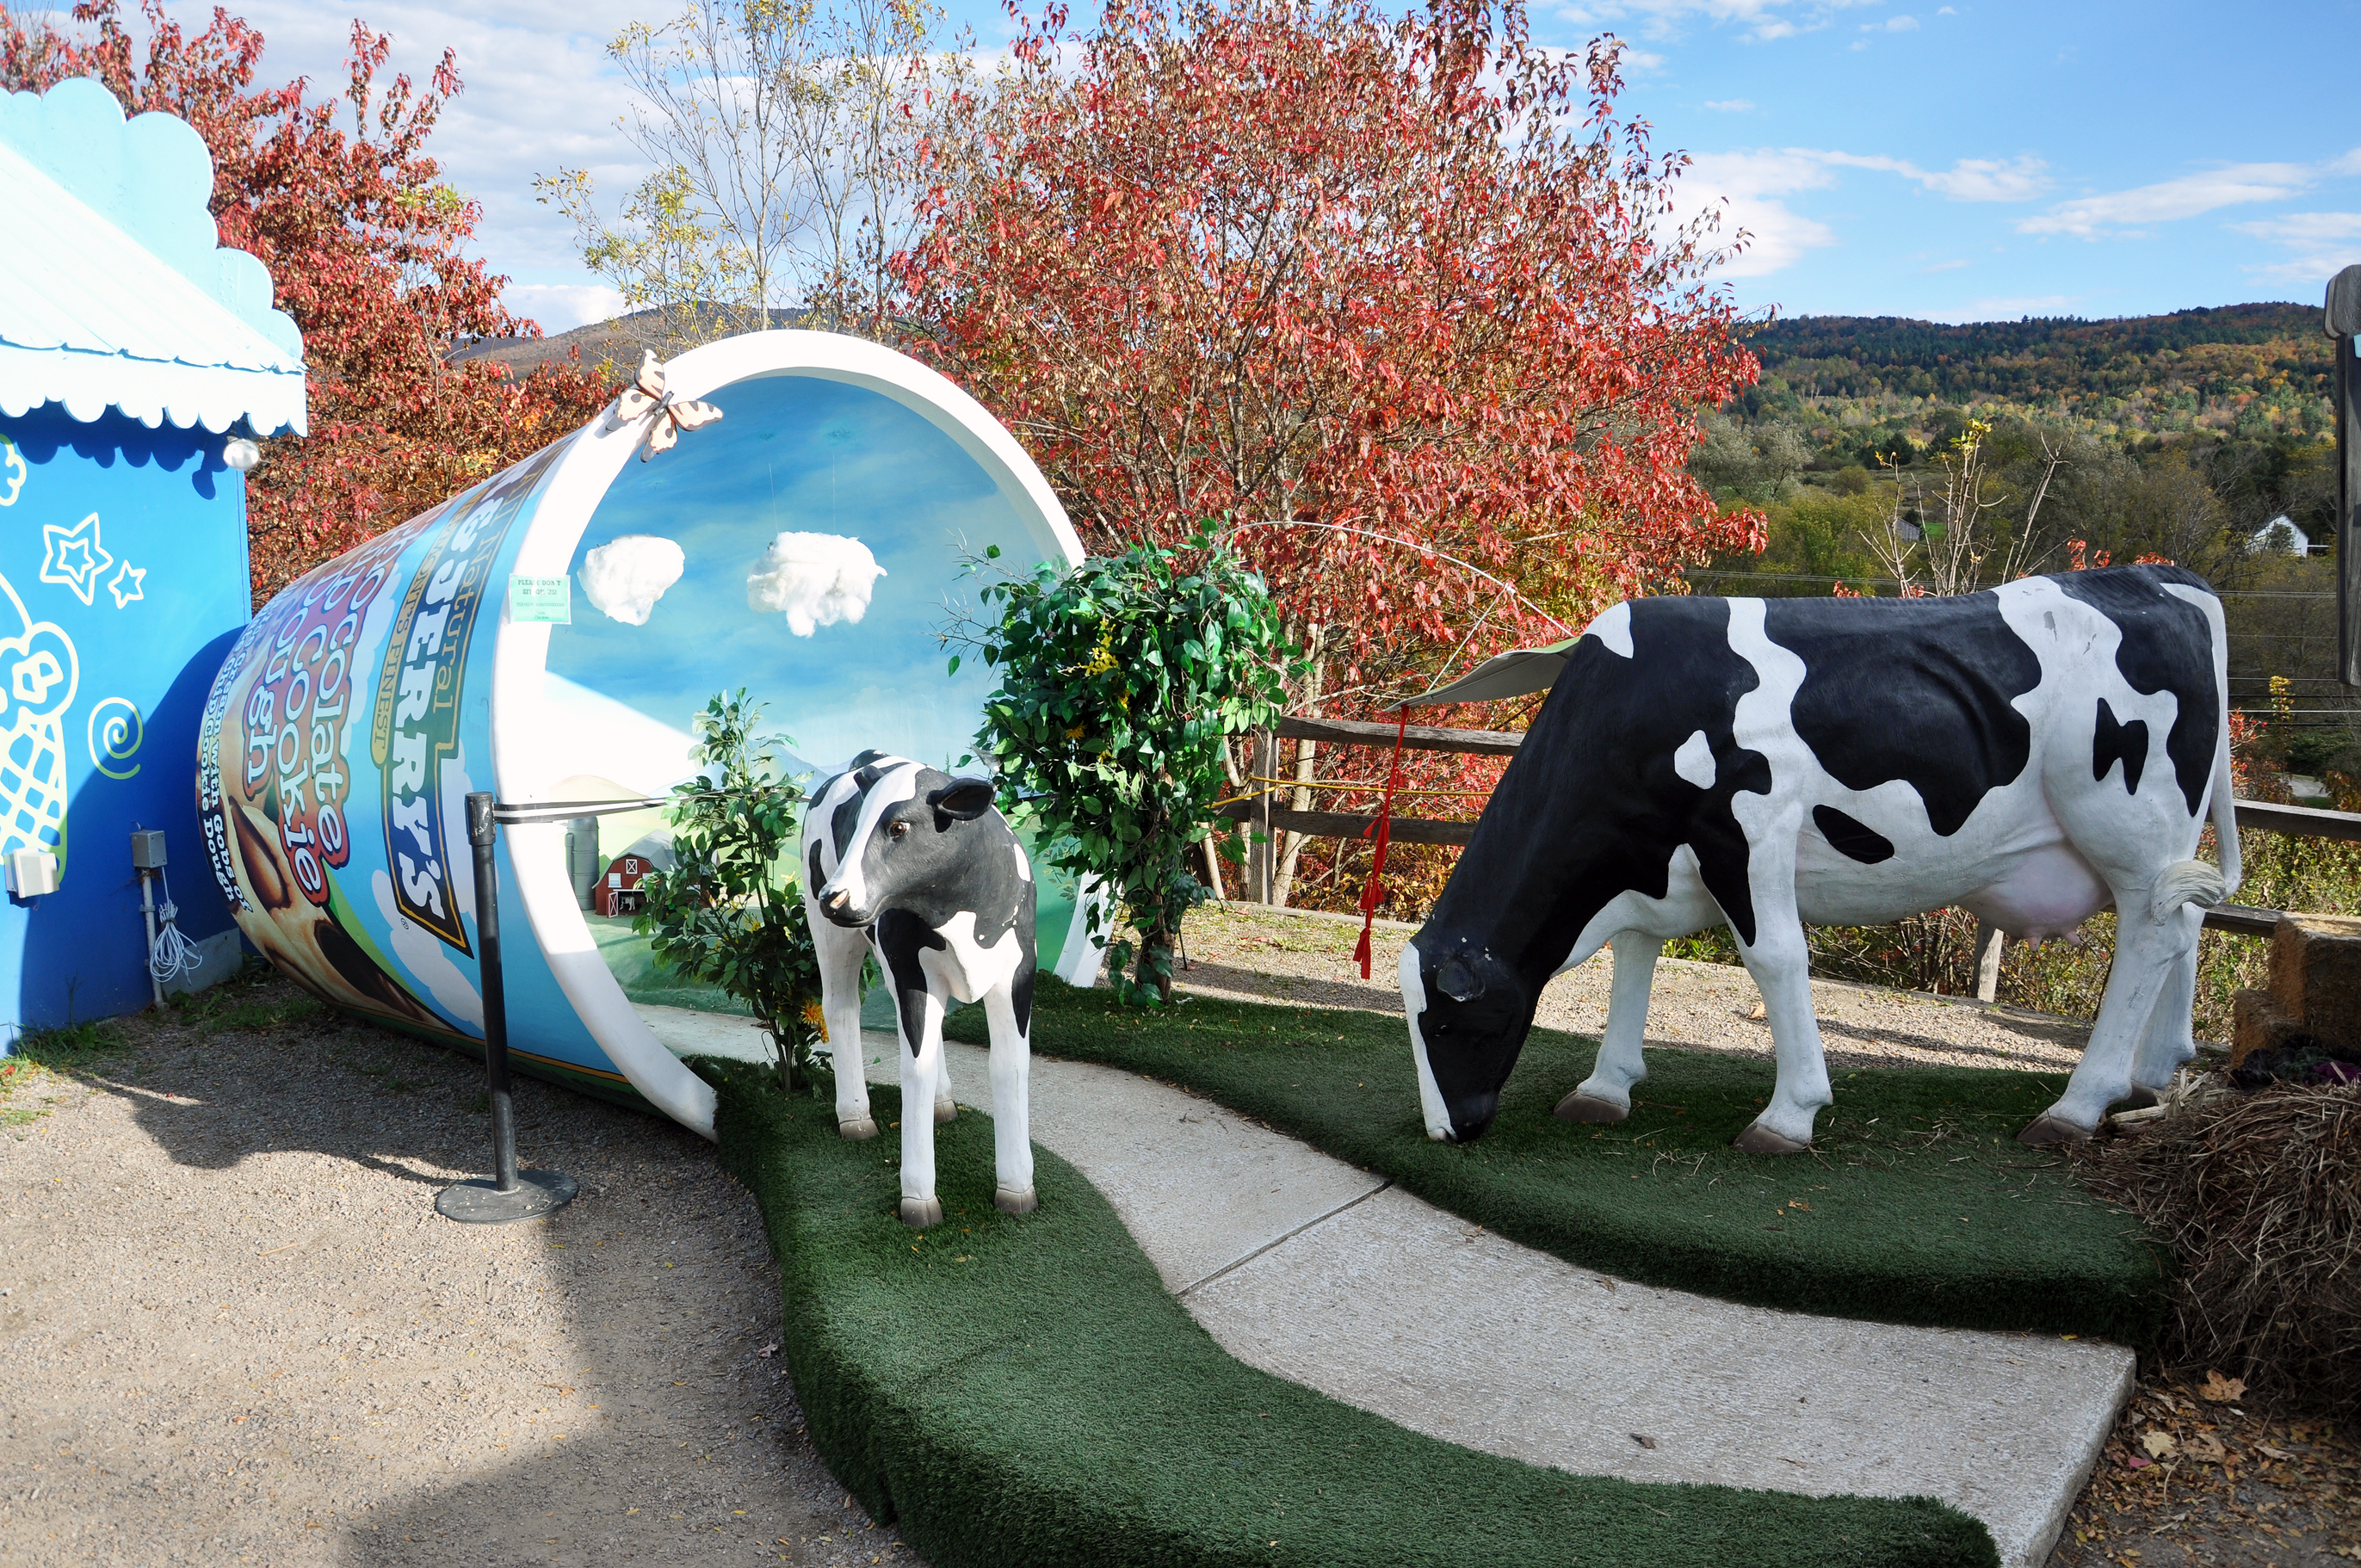 Statue of cows coming out of Ben and Jerry's Ice Cream